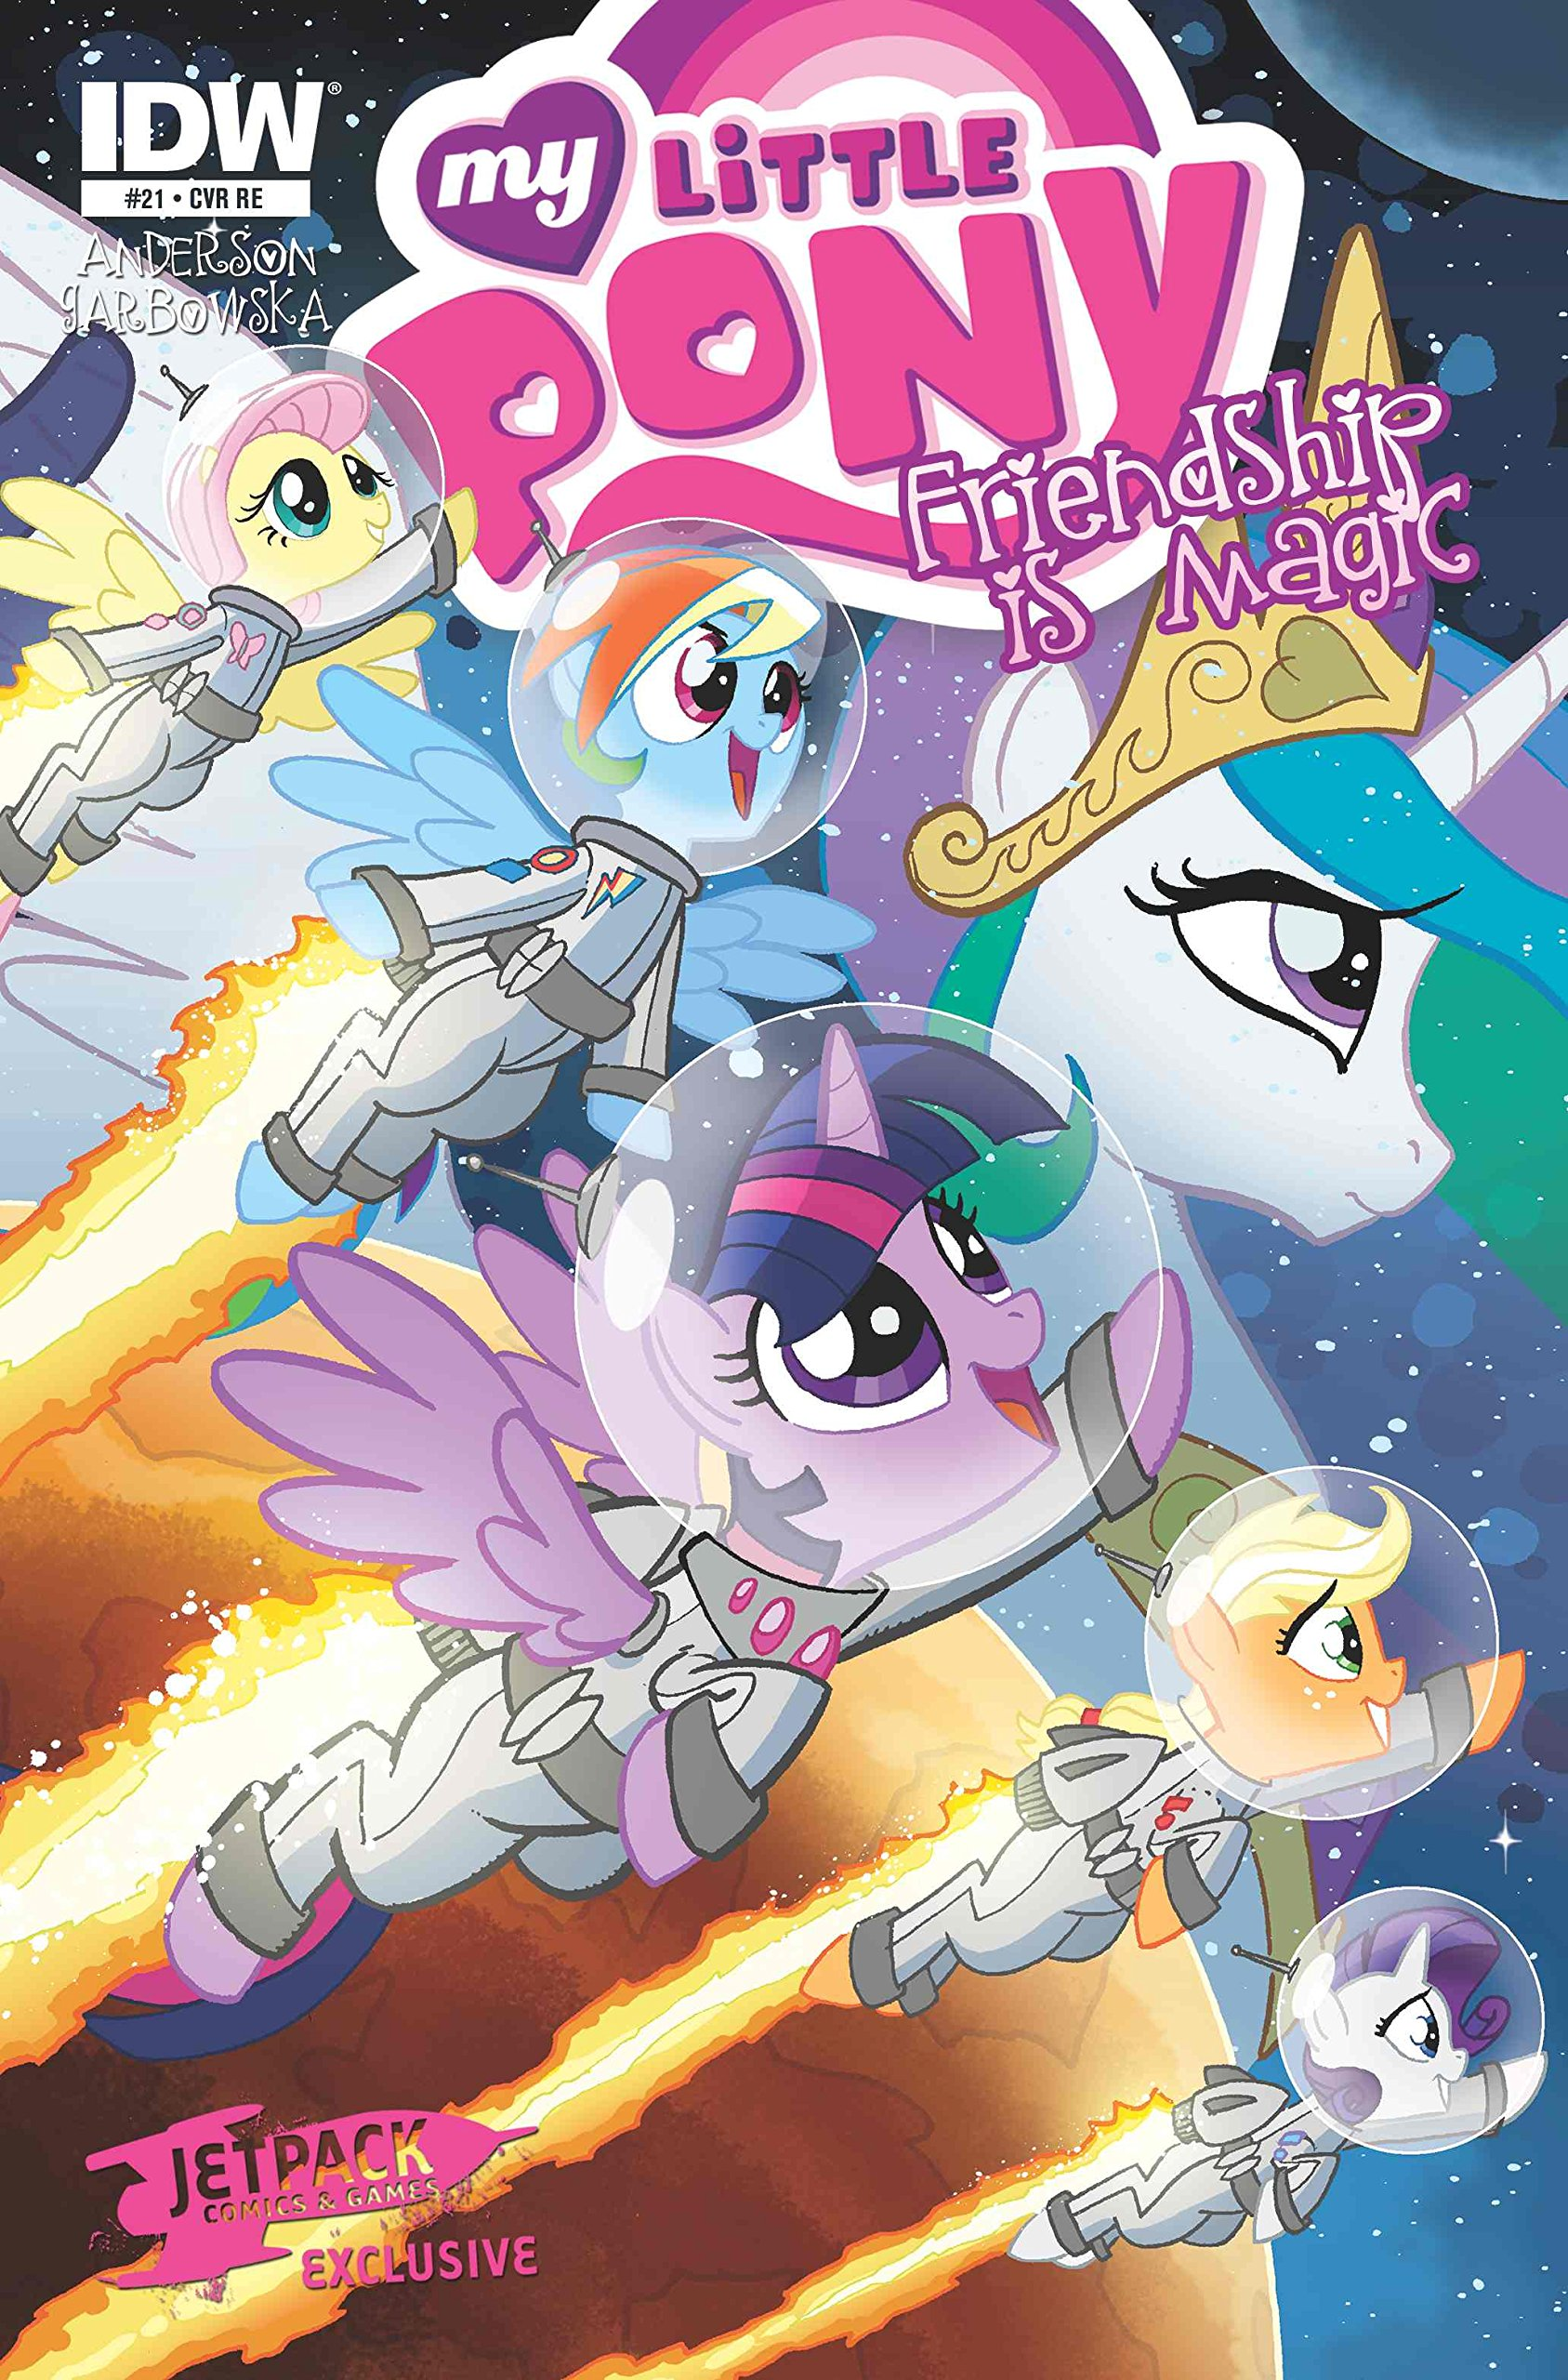 Download My Little Pony Friendship Is Magic #21 Jetpack Comics Exclusive Cover (Color) pdf